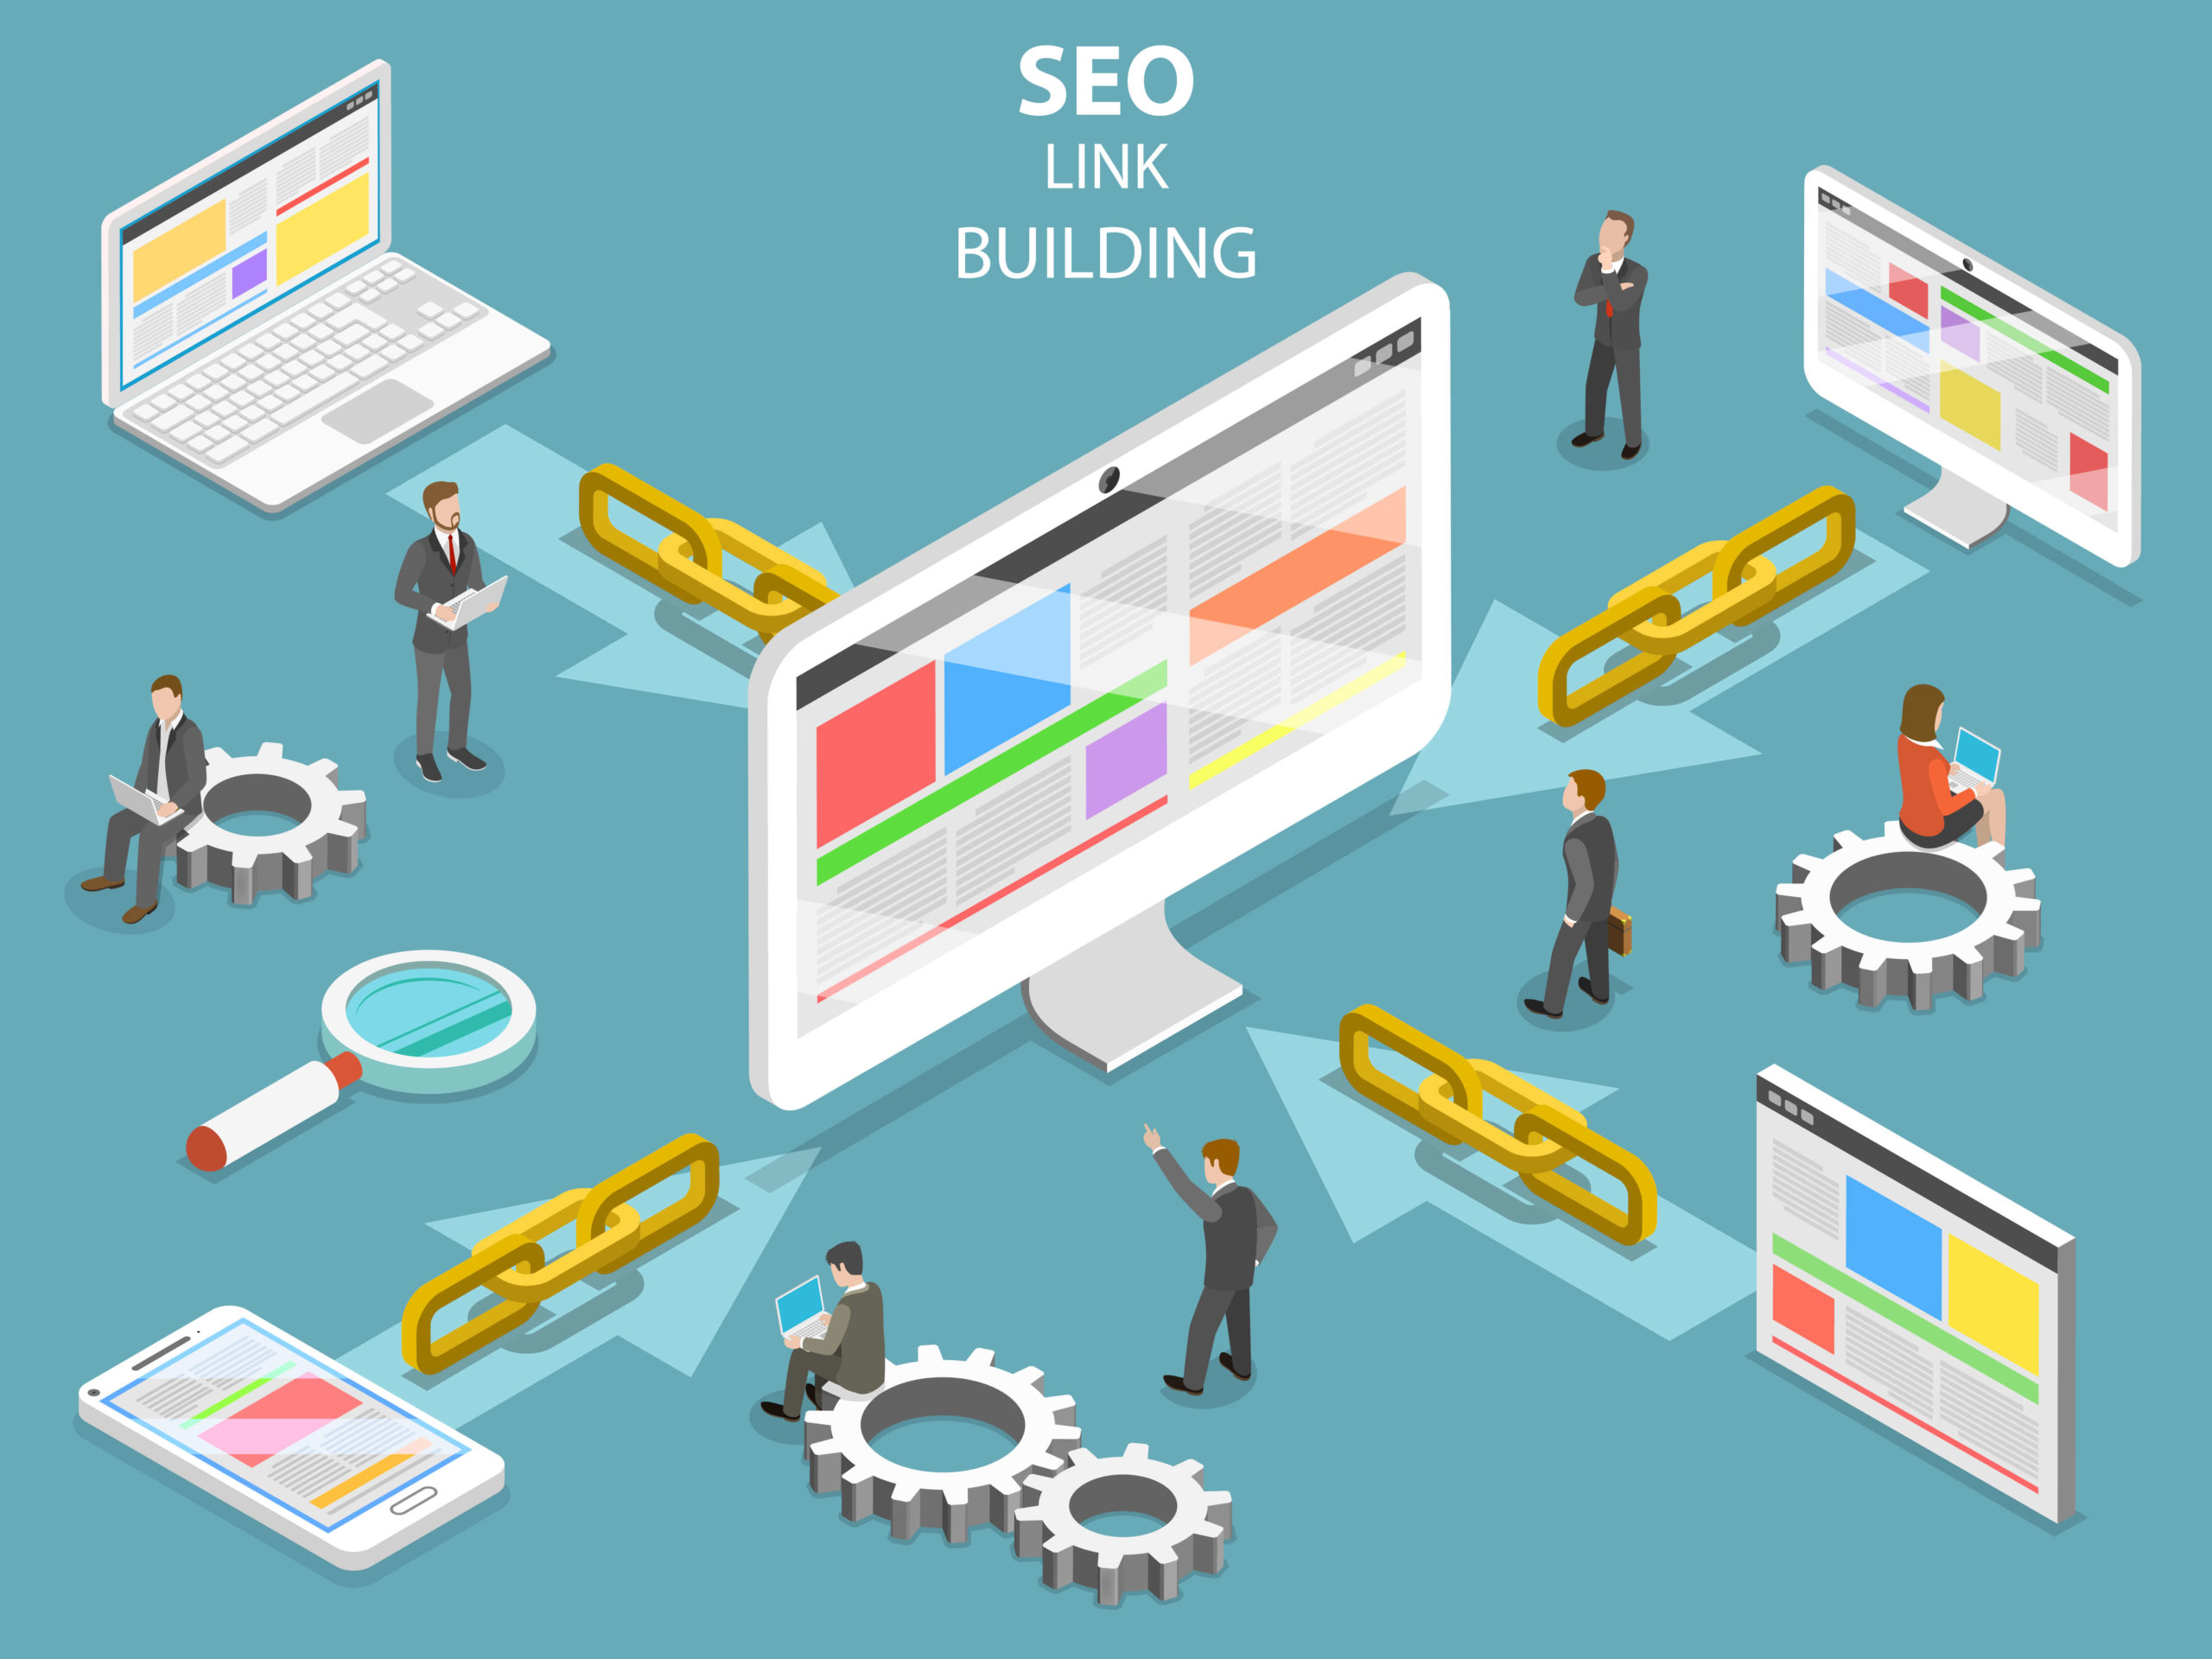 Why Link Building Is Important for Your SEO Strategy